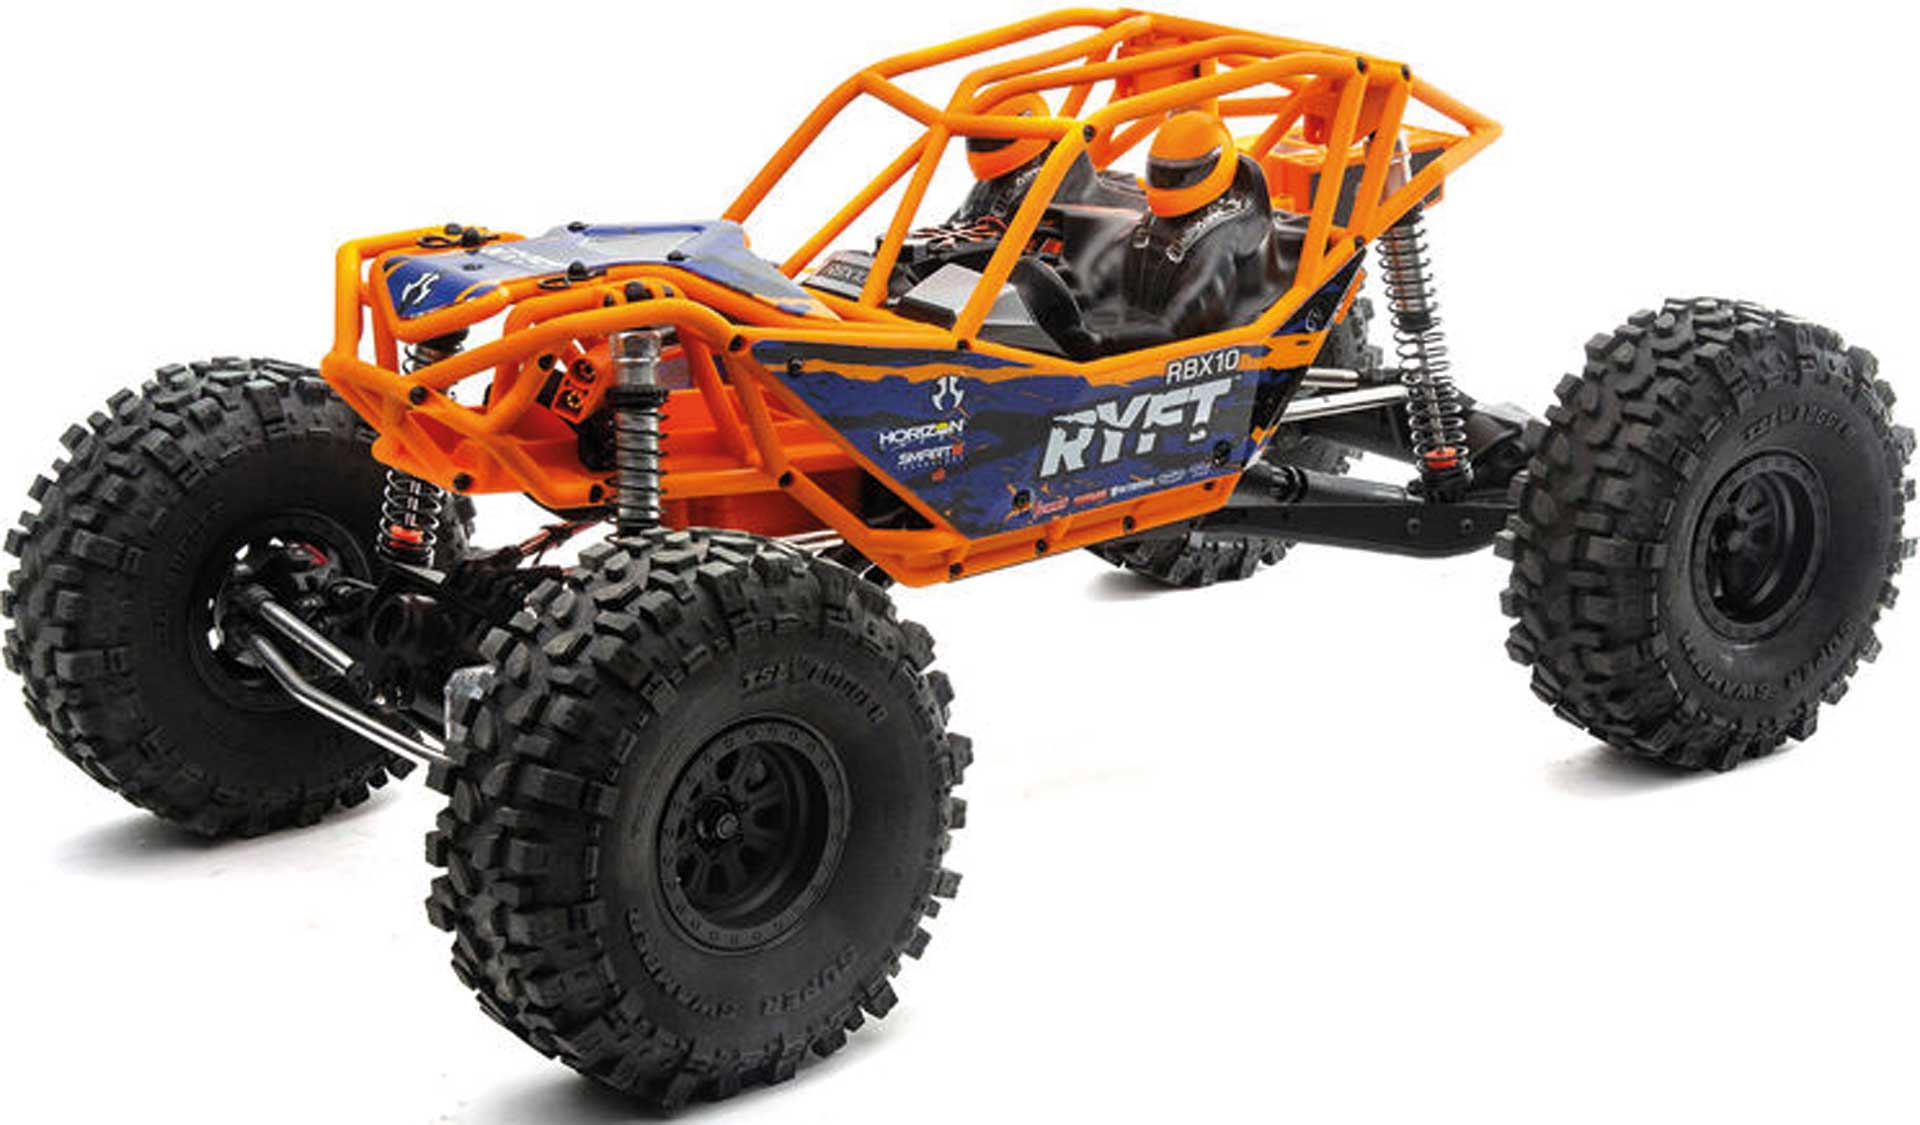 AXIAL RBX10 Ryft 1/10 4WD RTR Orange